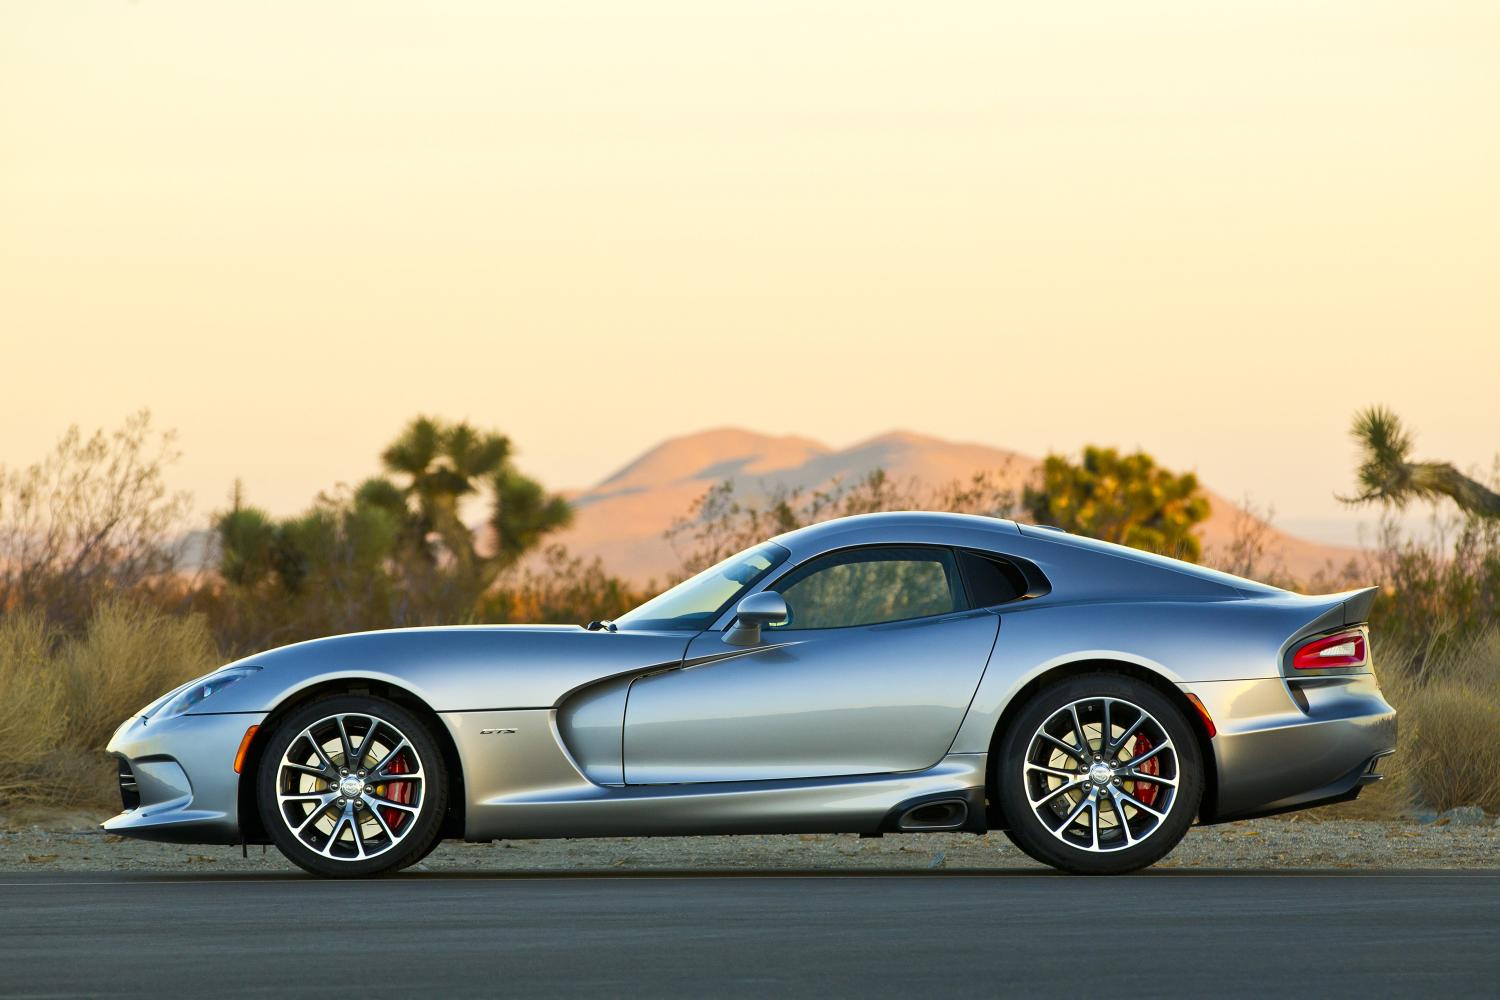 Pricing Released For Full 2015 Dodge Viper SRT Lineup